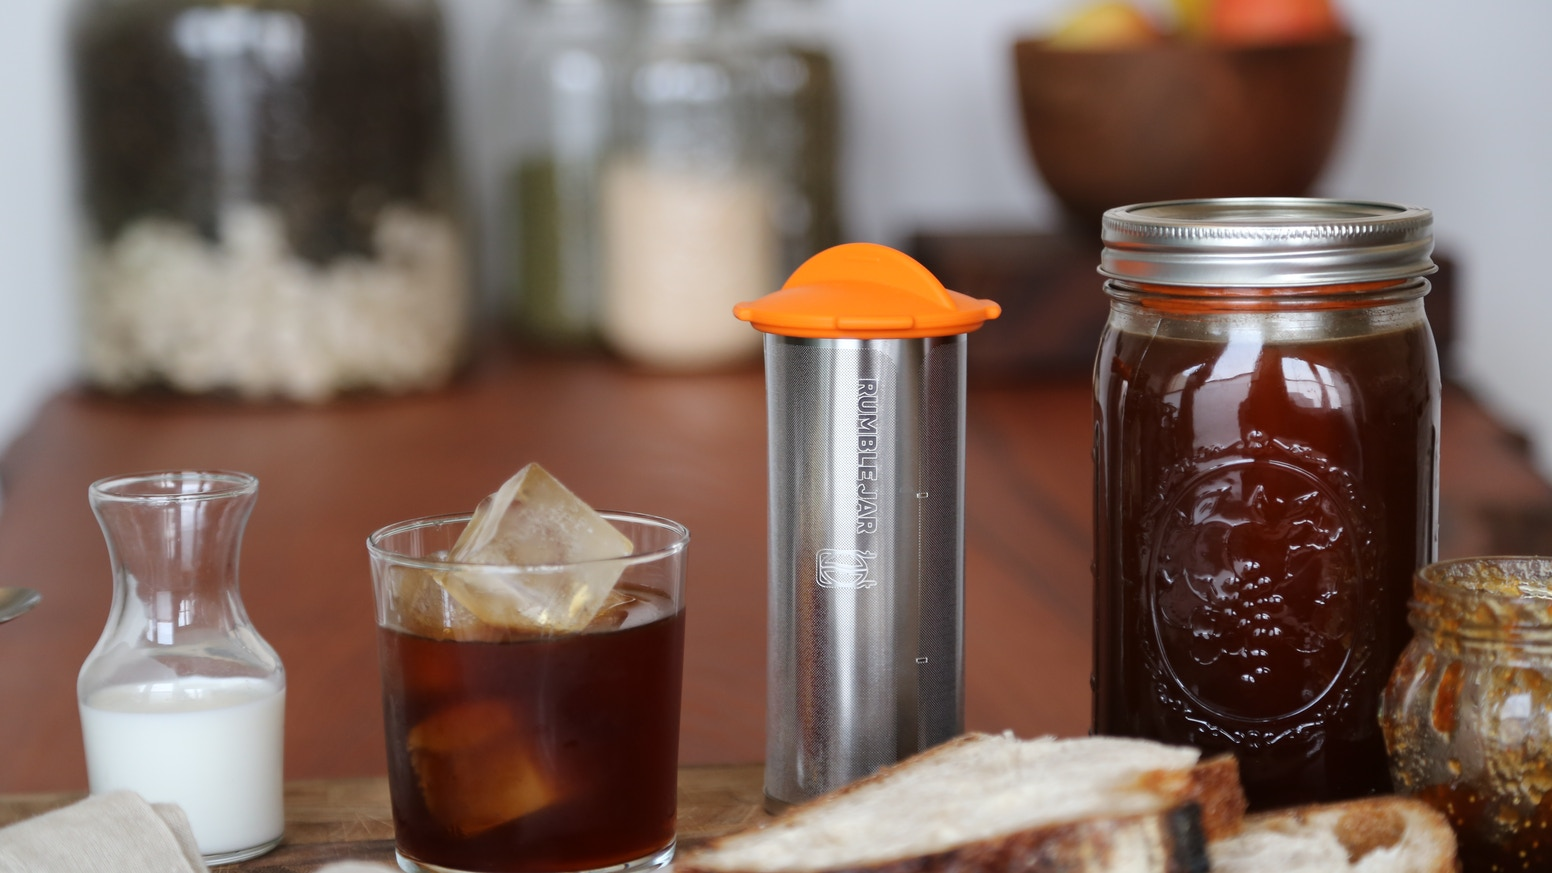 We built the perfect cold brew coffee maker and designed its filter to fit inside the time-tested Mason jar. It makes delicious cold brew coffee with just 1 minute of prep time. Available now in quart and half-gallon sizes at theRumbleJar.com.